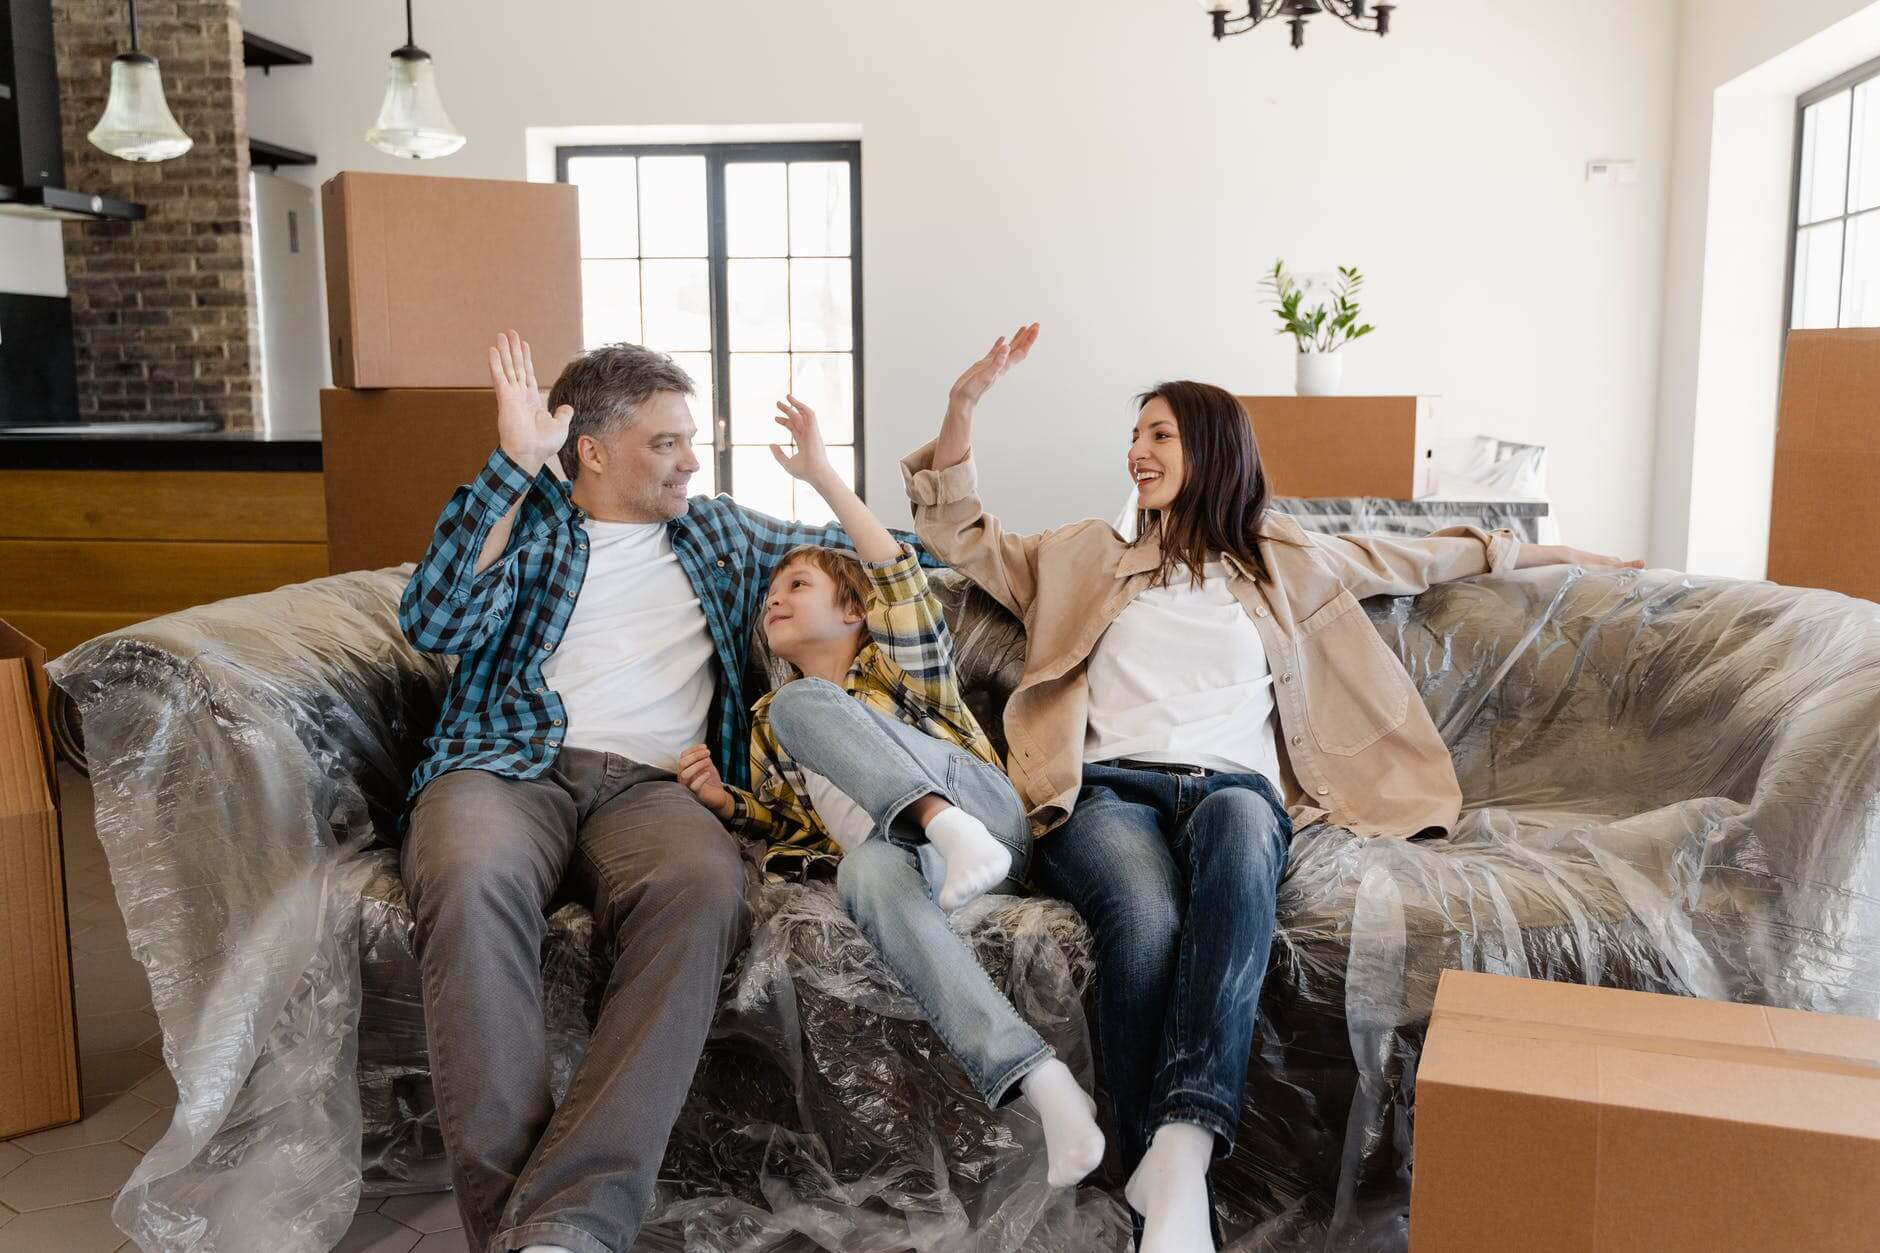 a family in the living room sitting on a sofa, enjoying their place after the moving company delivered their belongings